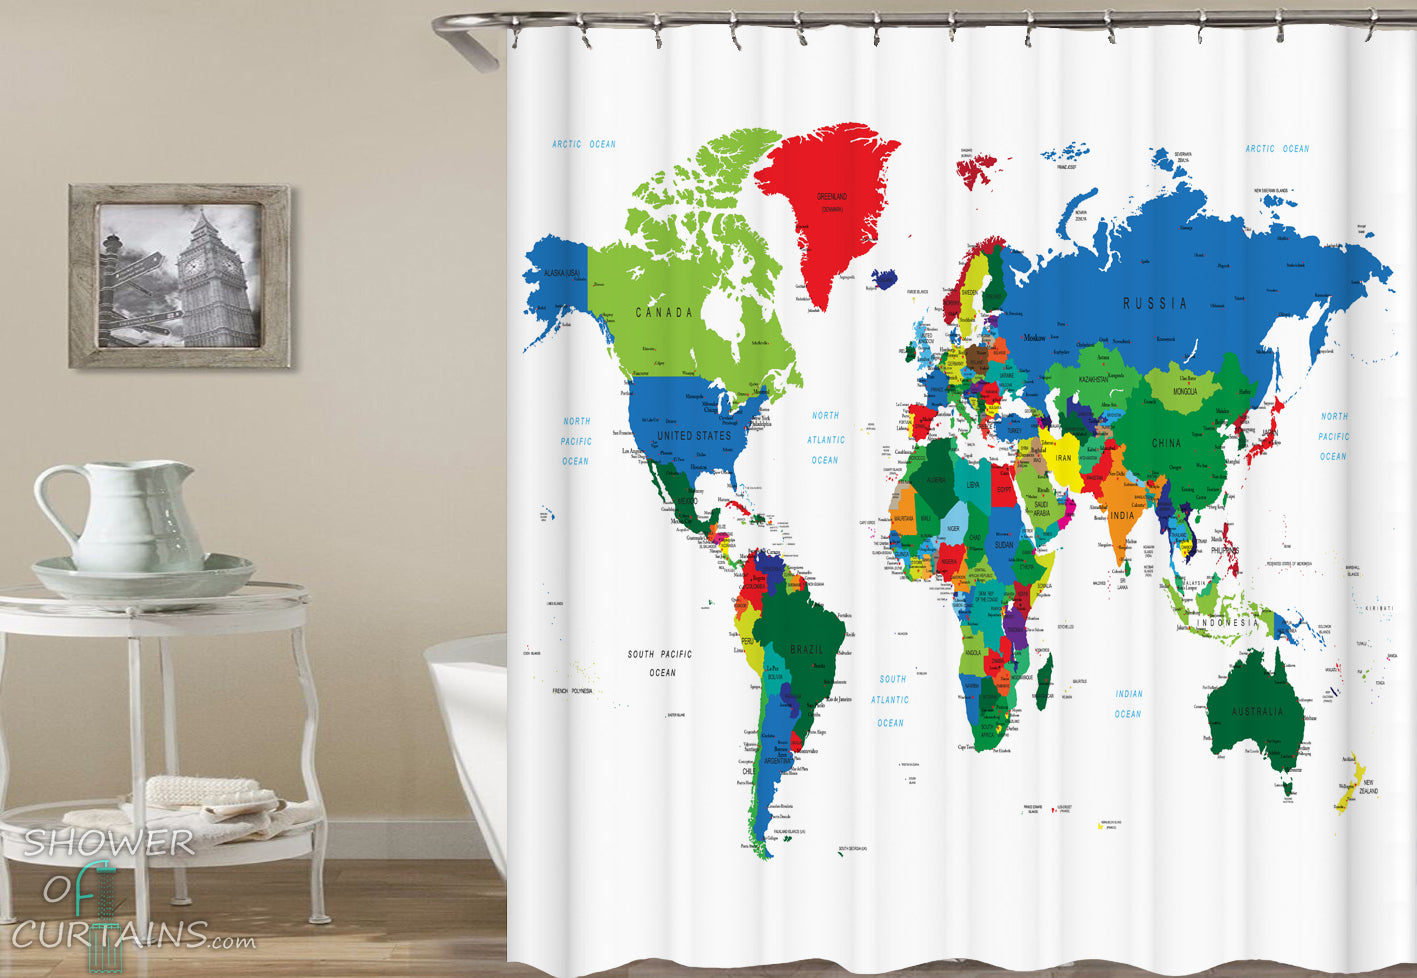 Shower Curtains Multi Colored World Map Shower Of Curtains